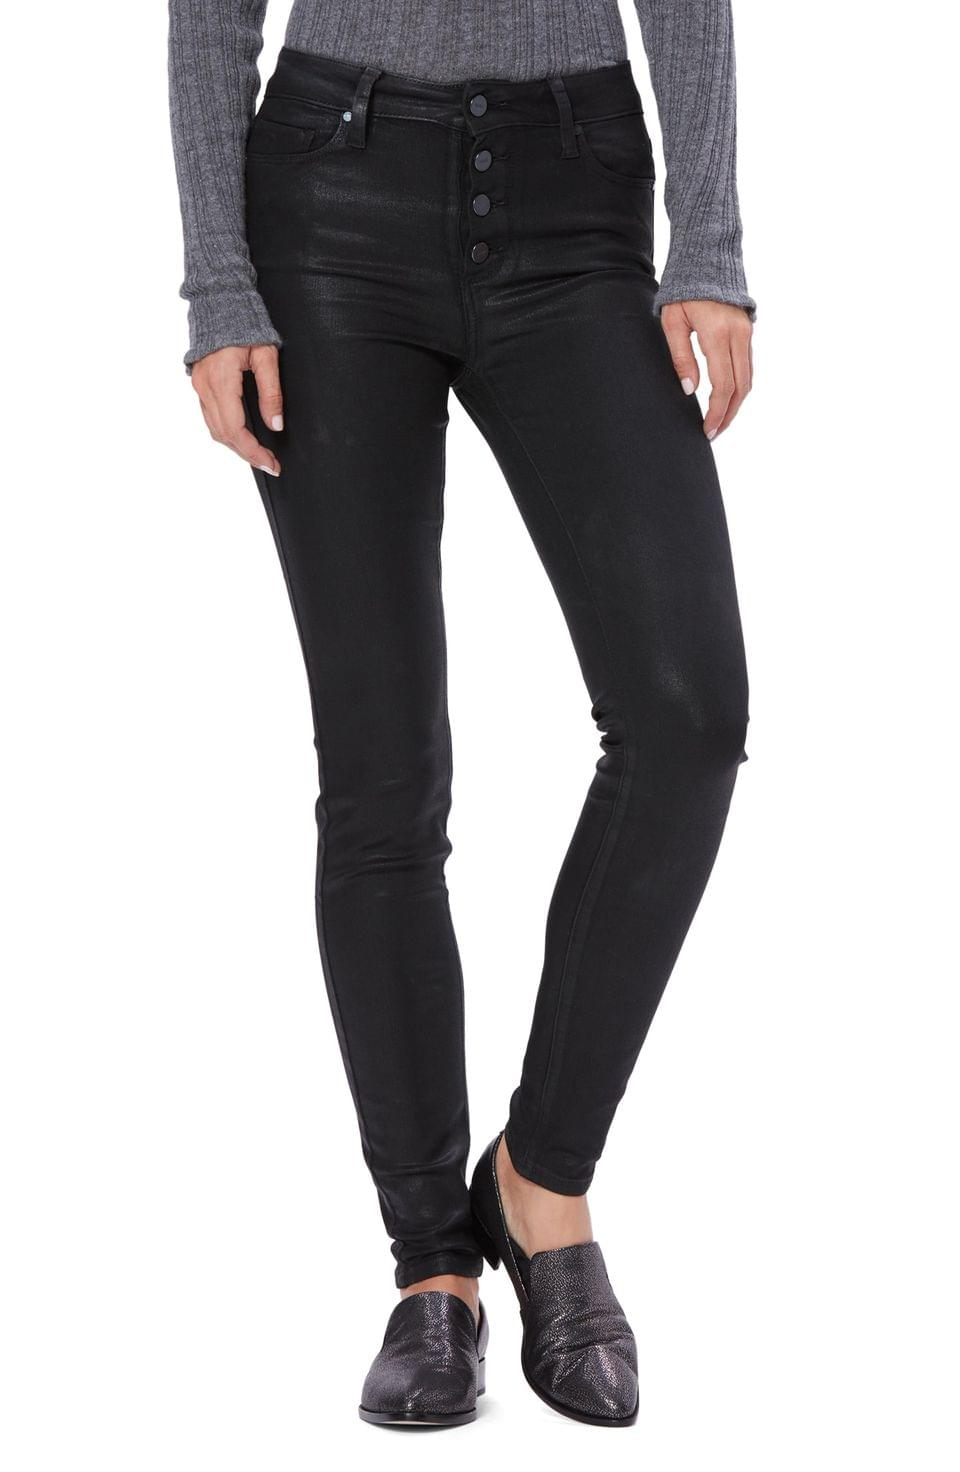 Women's PAIGE Transcend - Hoxton Coated High Waist Ultra Skinny Jeans (Black Fog Luxe Coating)